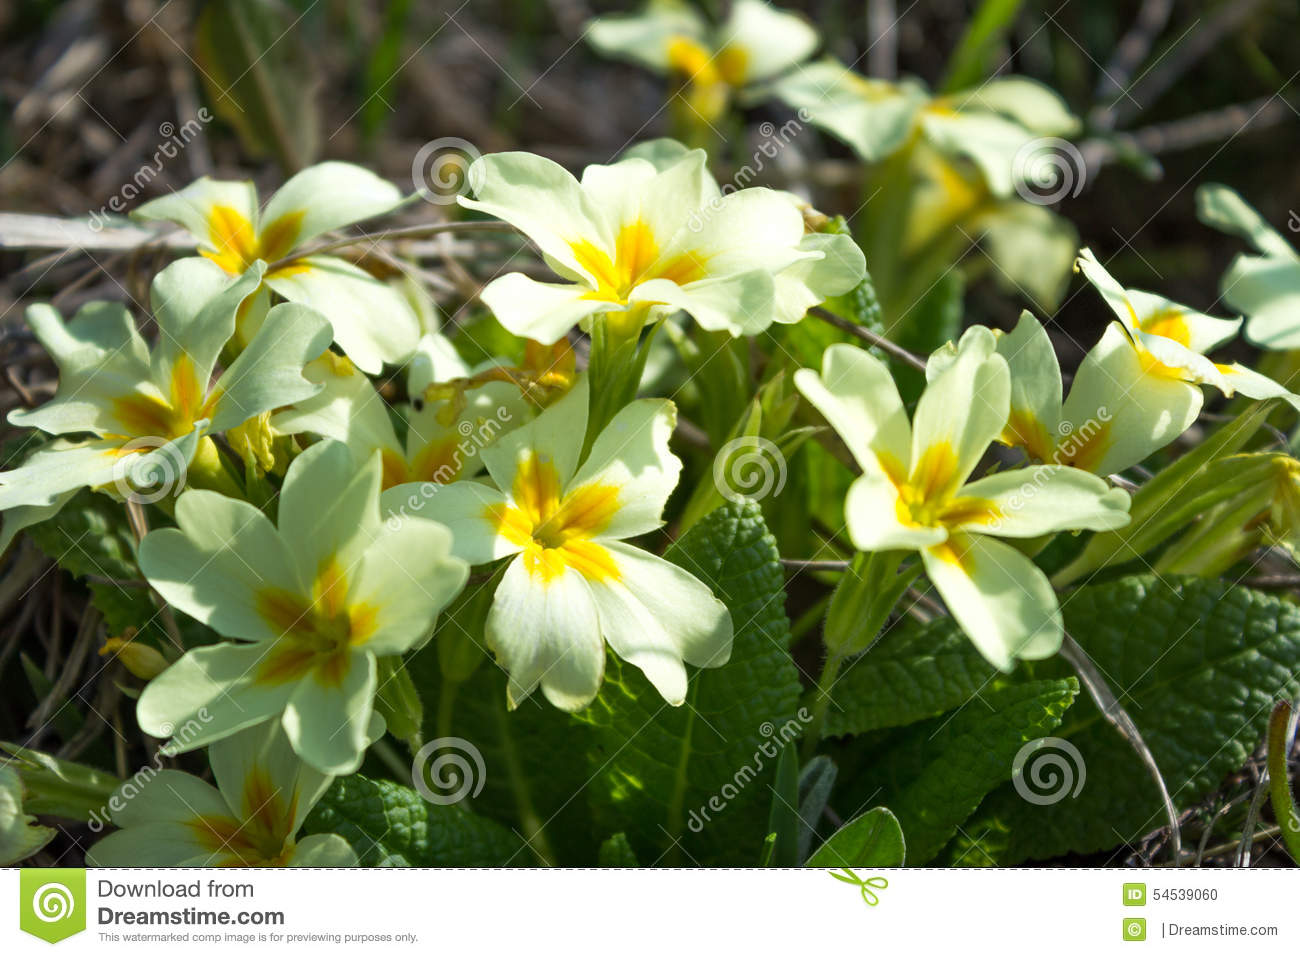 Spring white flowers with yellow middle of stock photo 54539060 spring white flowers with yellow middle of mightylinksfo